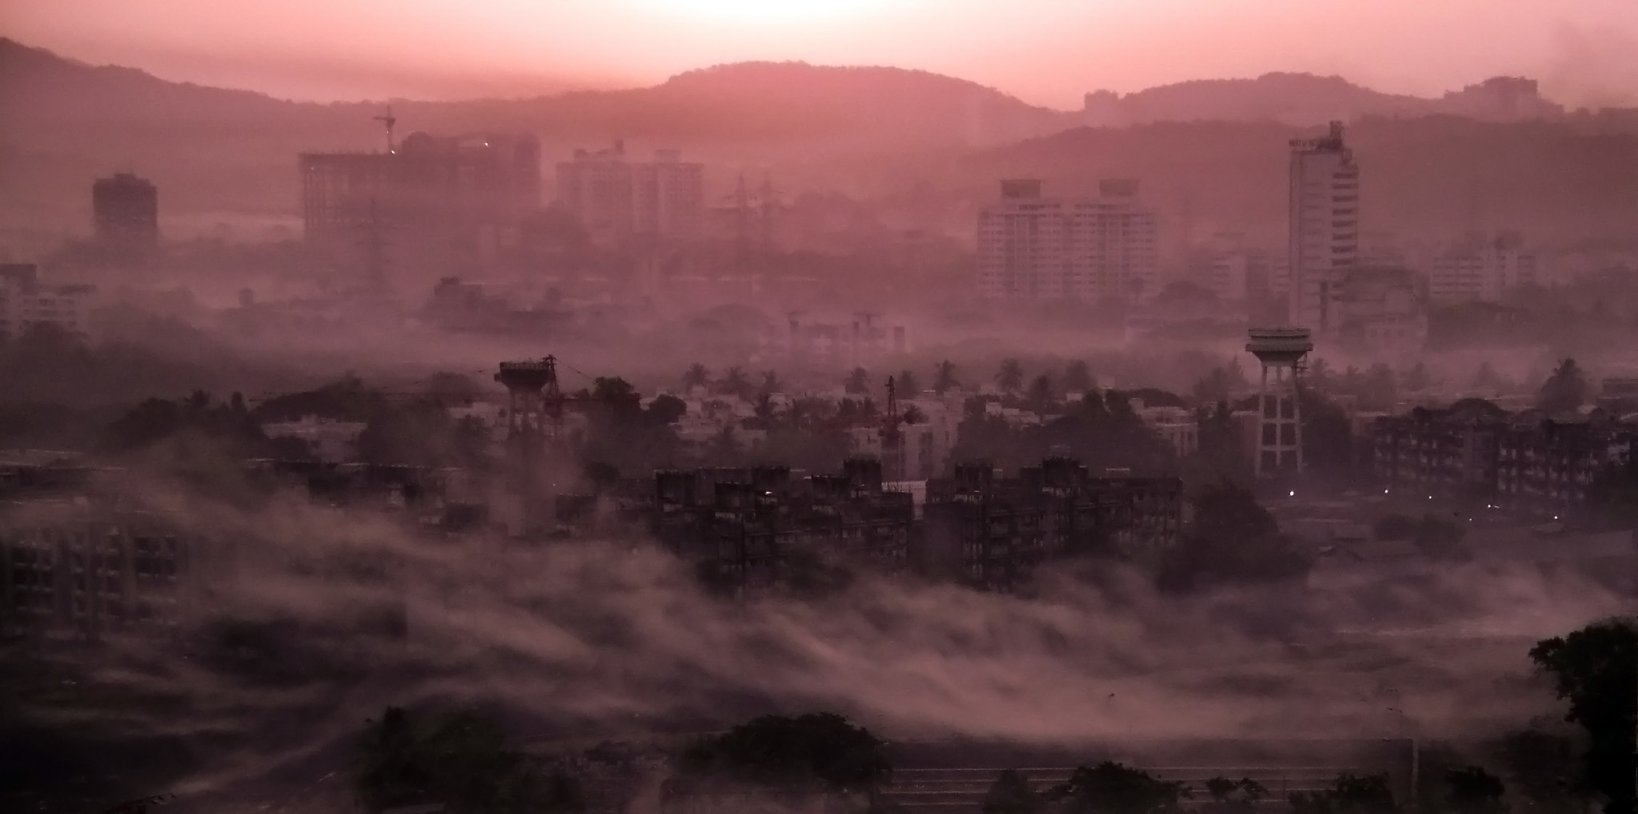 Mumbai air pollution at dawn-air quality